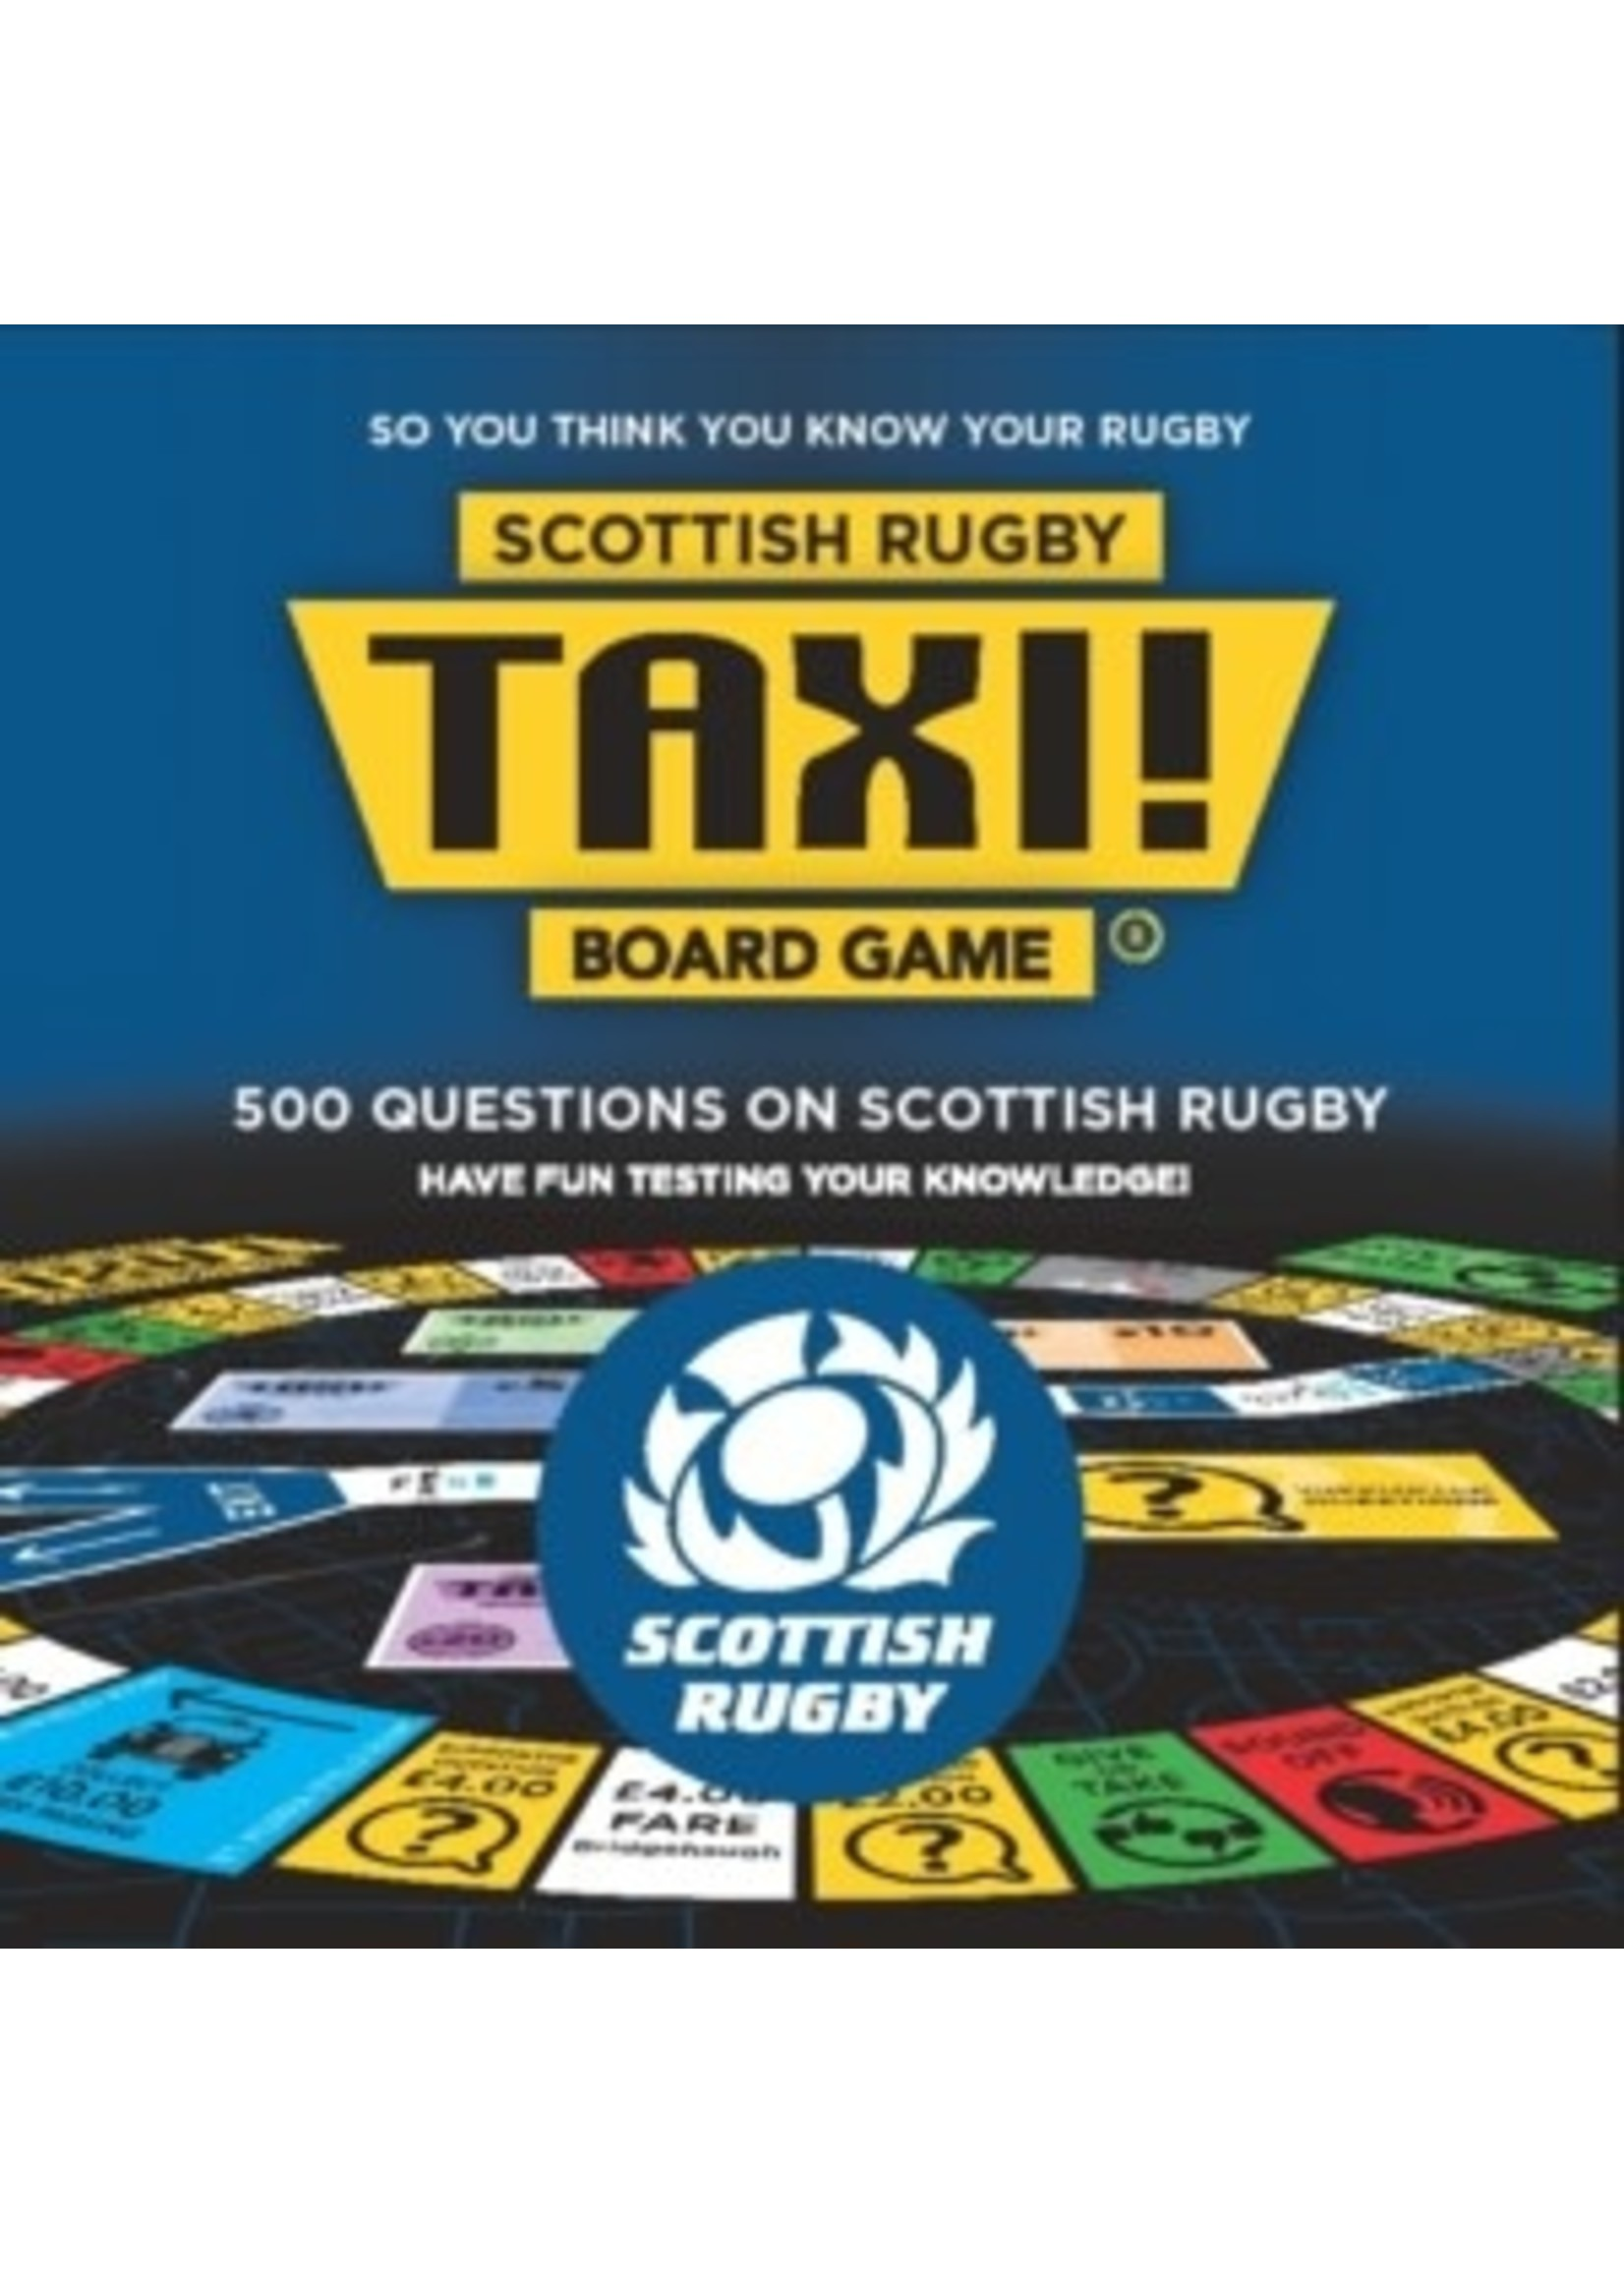 Taxi! Board Game - Scottish Rugby Edition (2019)